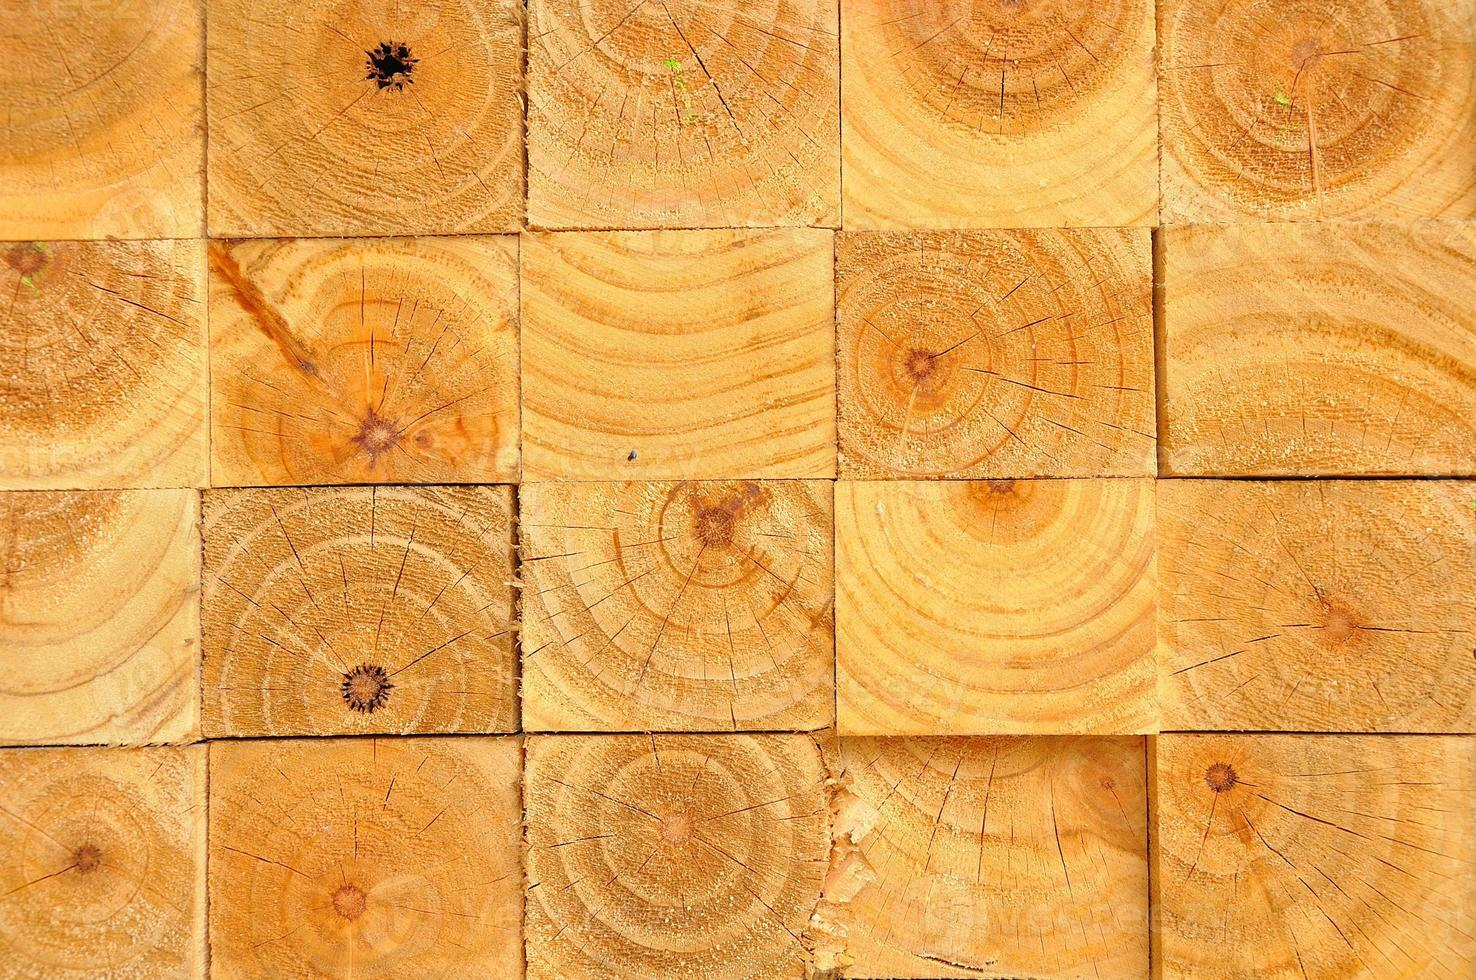 Holz stapelt sich foto